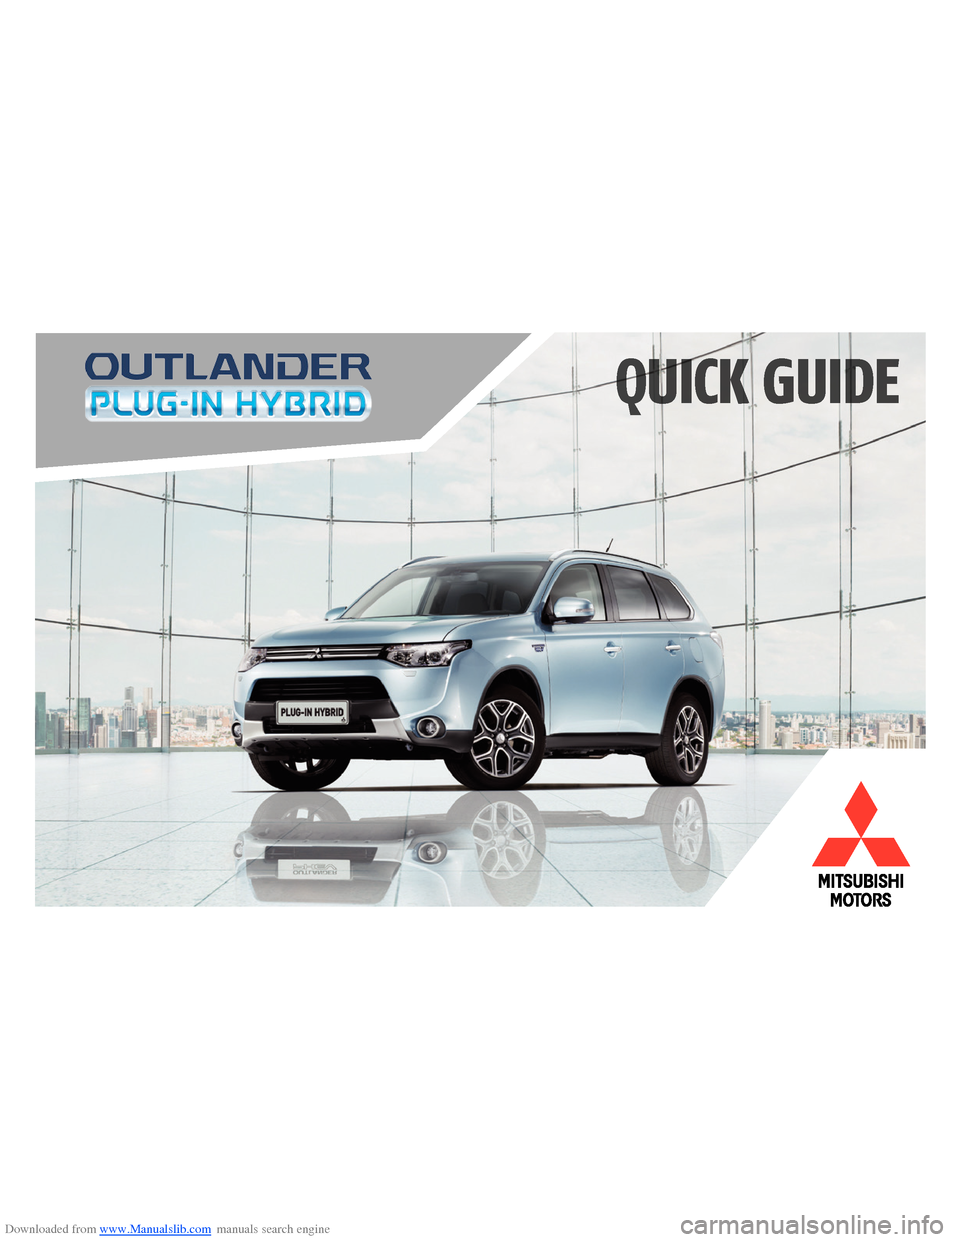 MITSUBISHI OUTLANDER HYBRID 2014 3.G Owners Handbook, Page 1